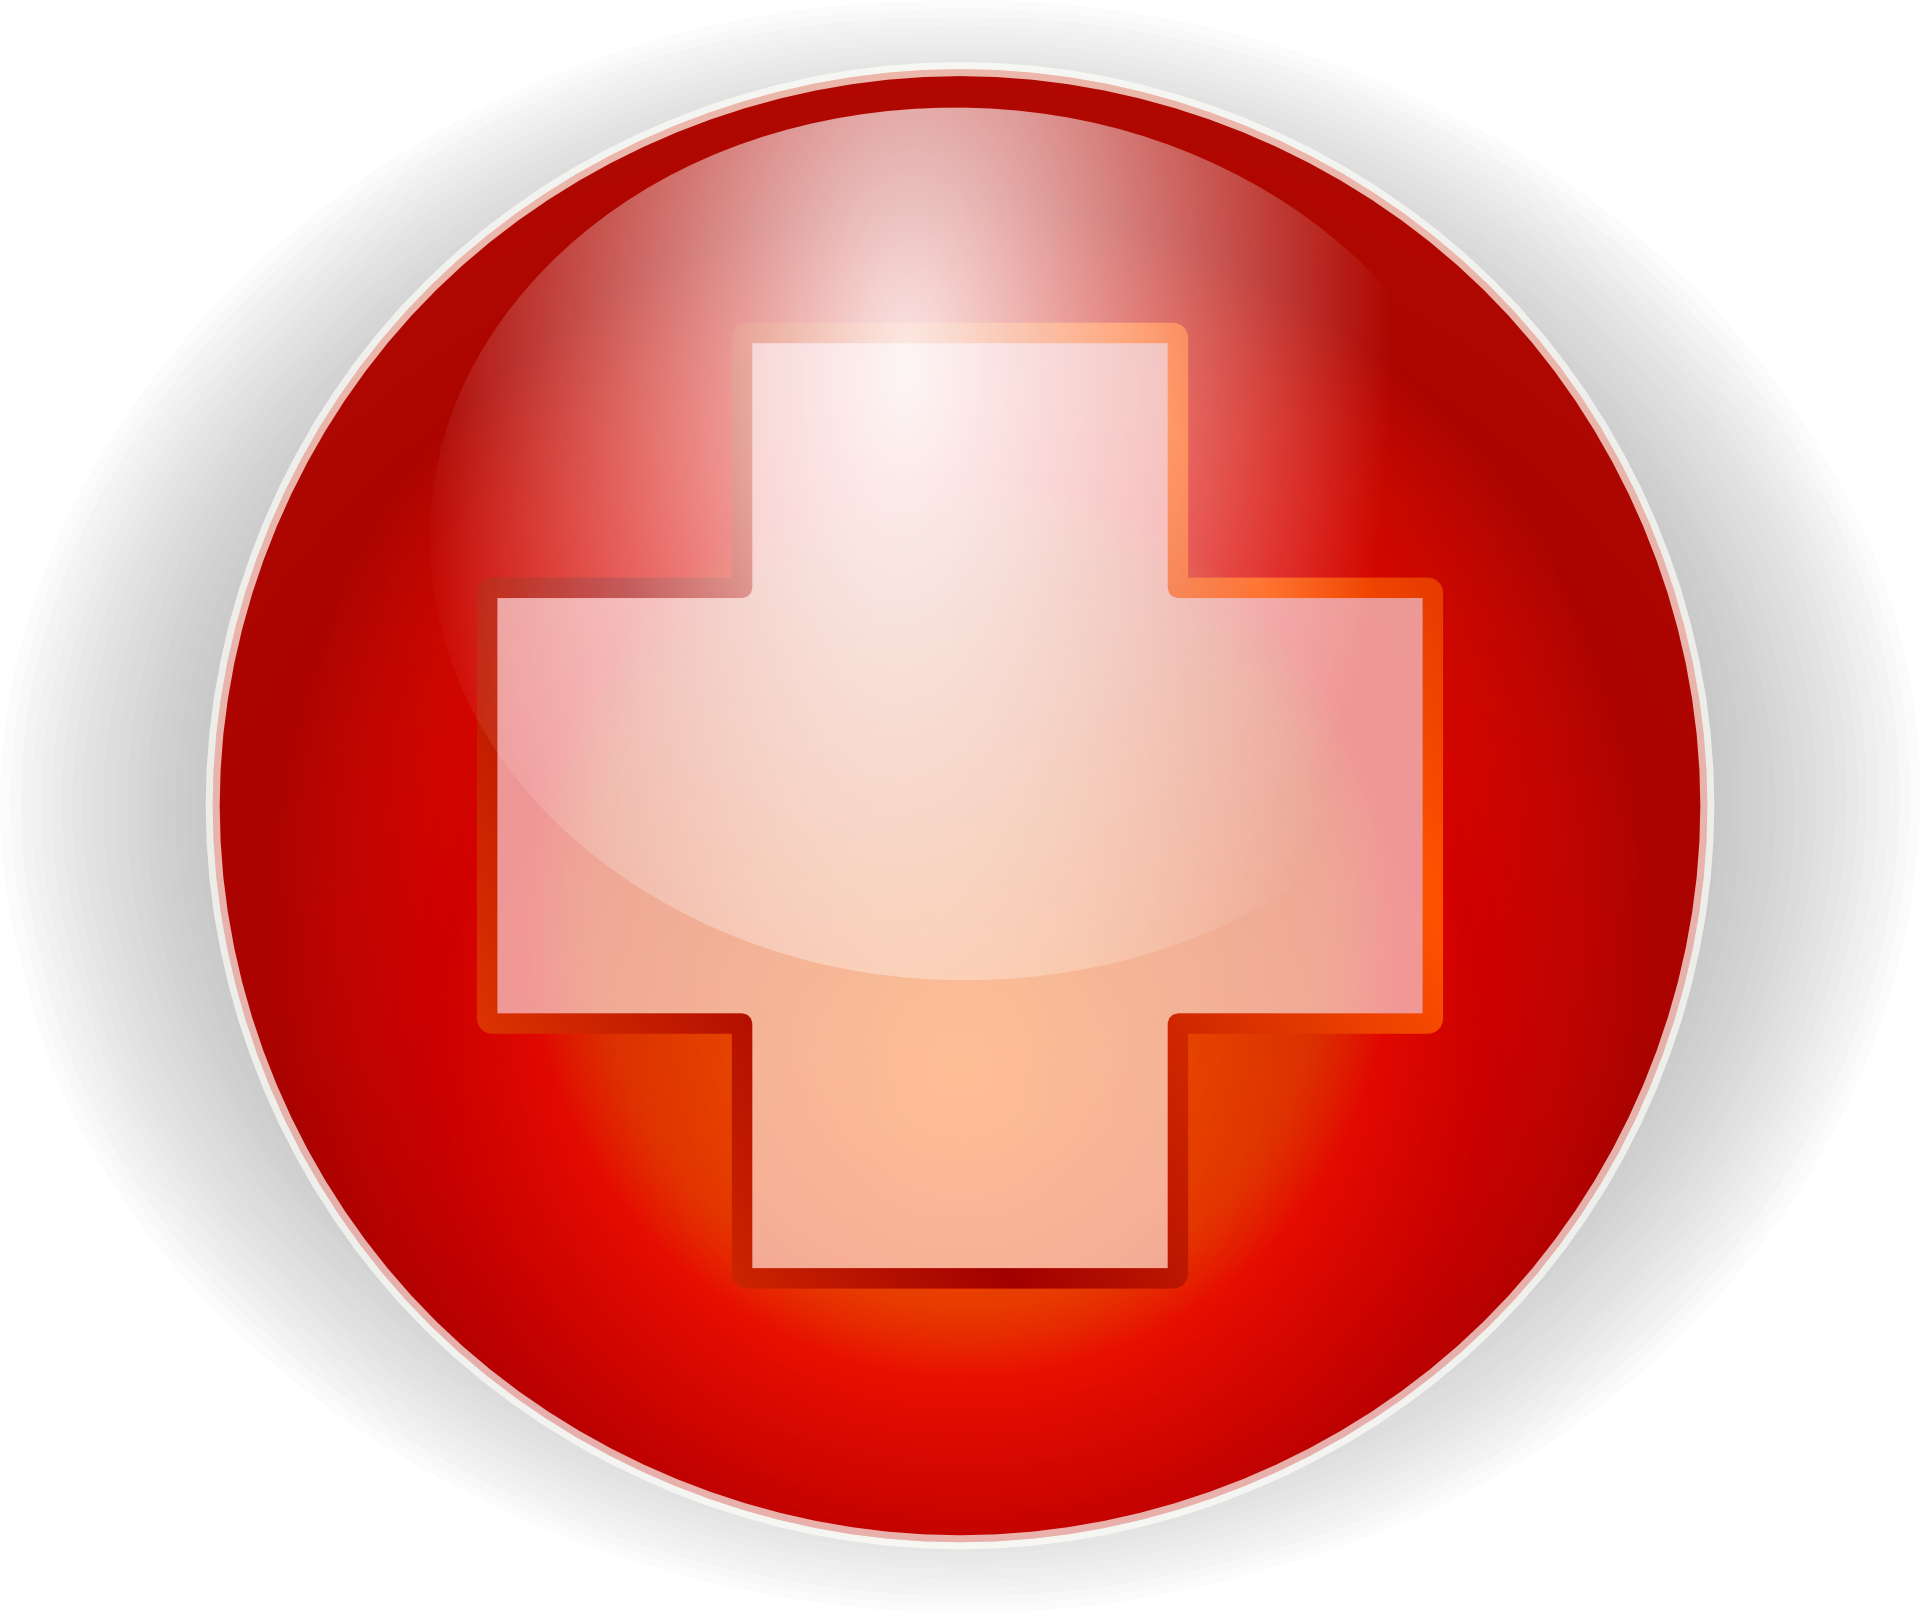 Red cross button ,plus,hallmarks of hospital vector